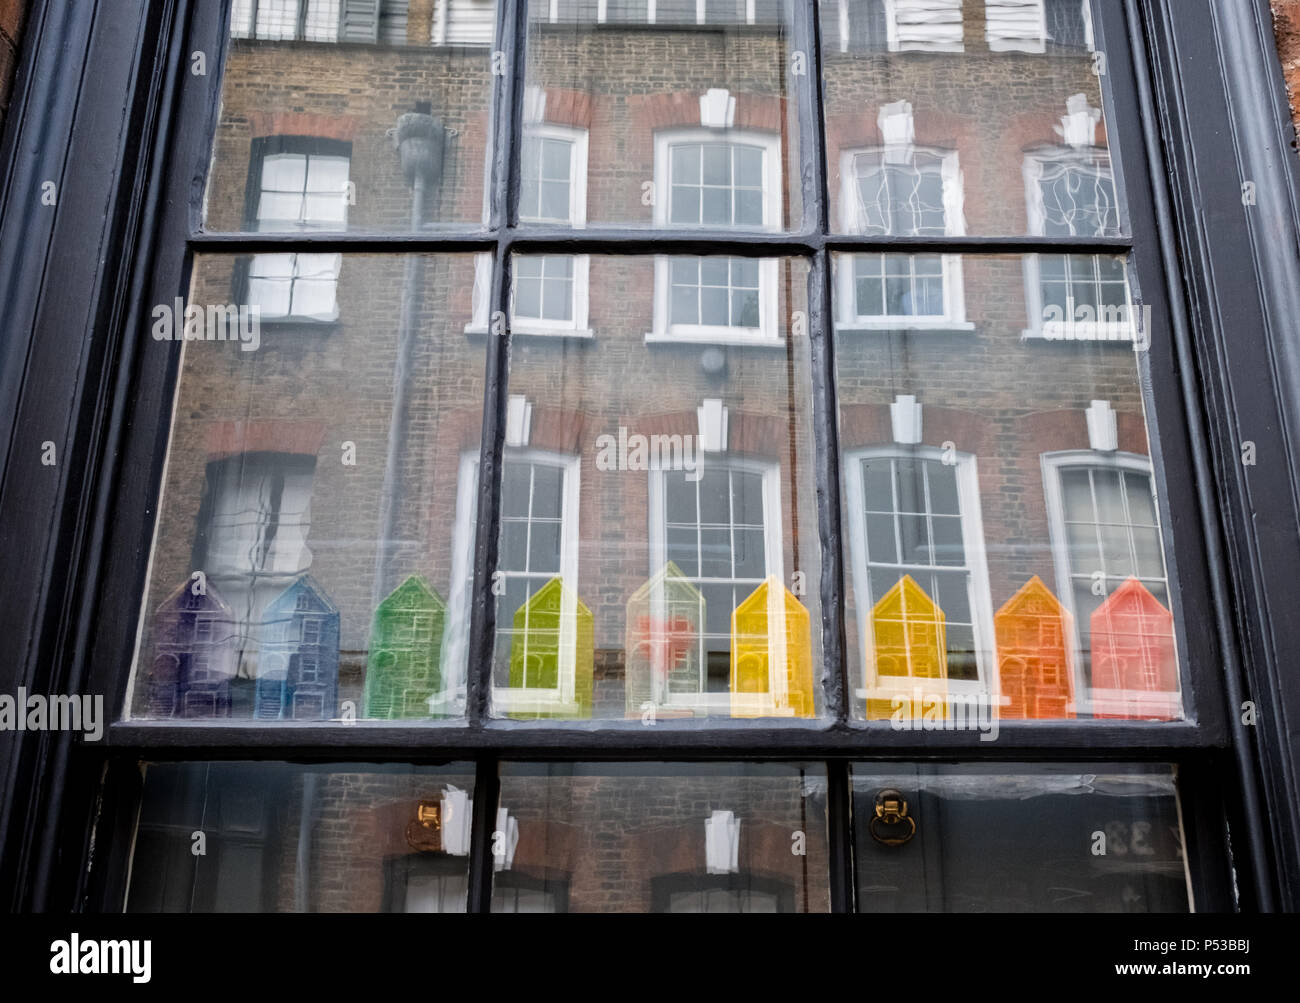 Window of Huguenot house on Princelet Street, Spitalfields, London, showing reflection of buildings opposite and quirky rainbow coloured model houses - Stock Image